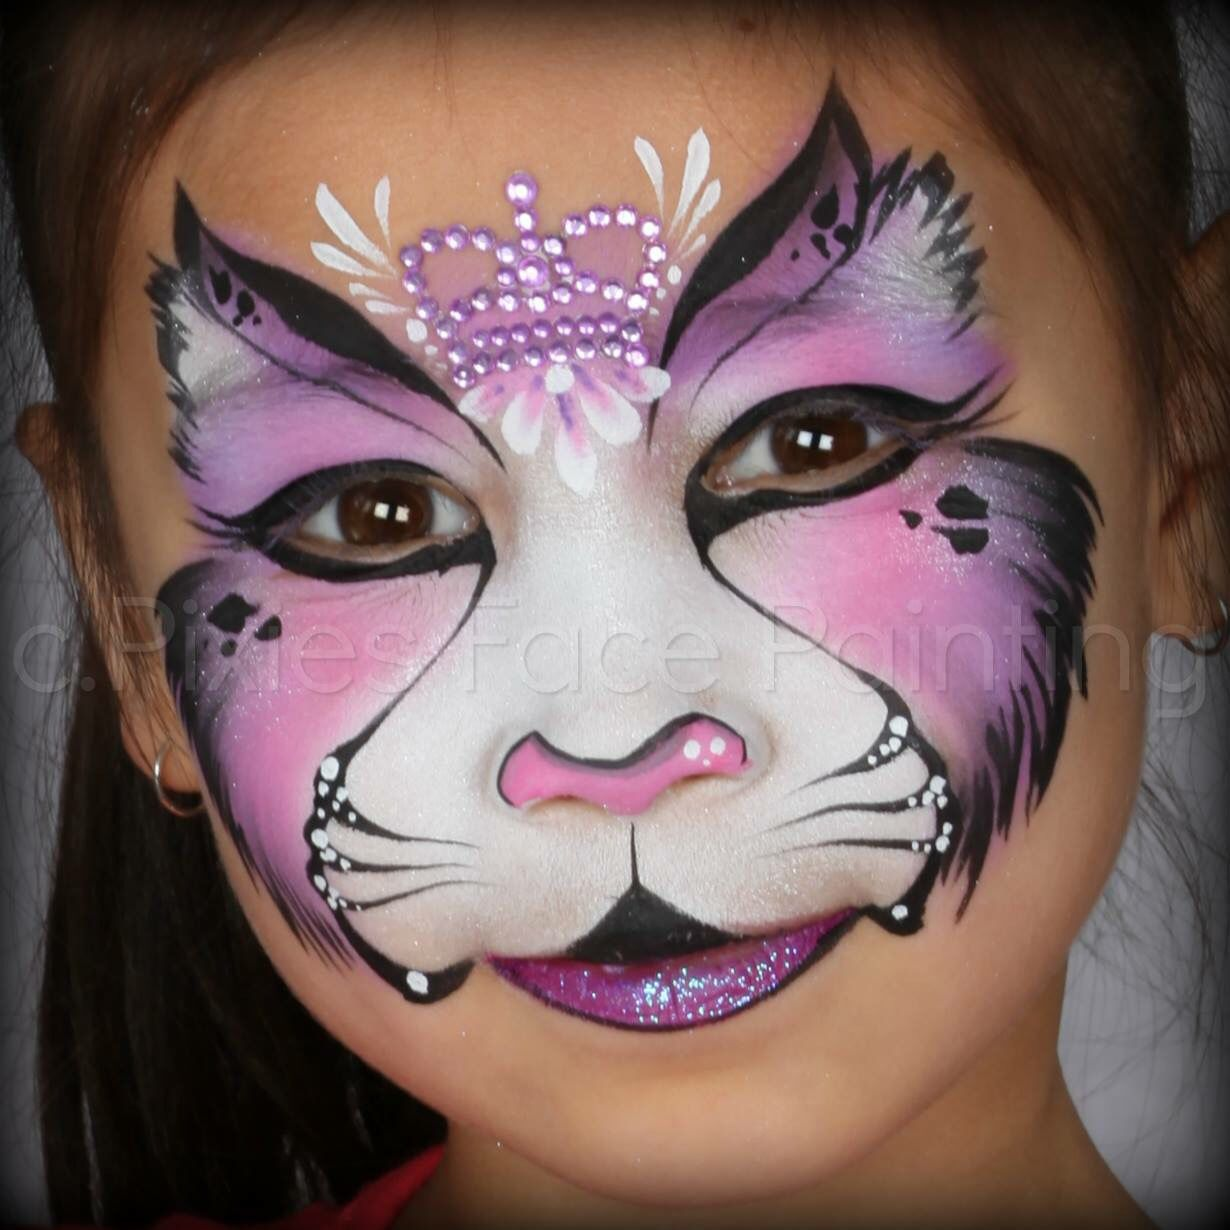 Pink Crowned Kitty Face Paint FacePainting Cats & Kittys